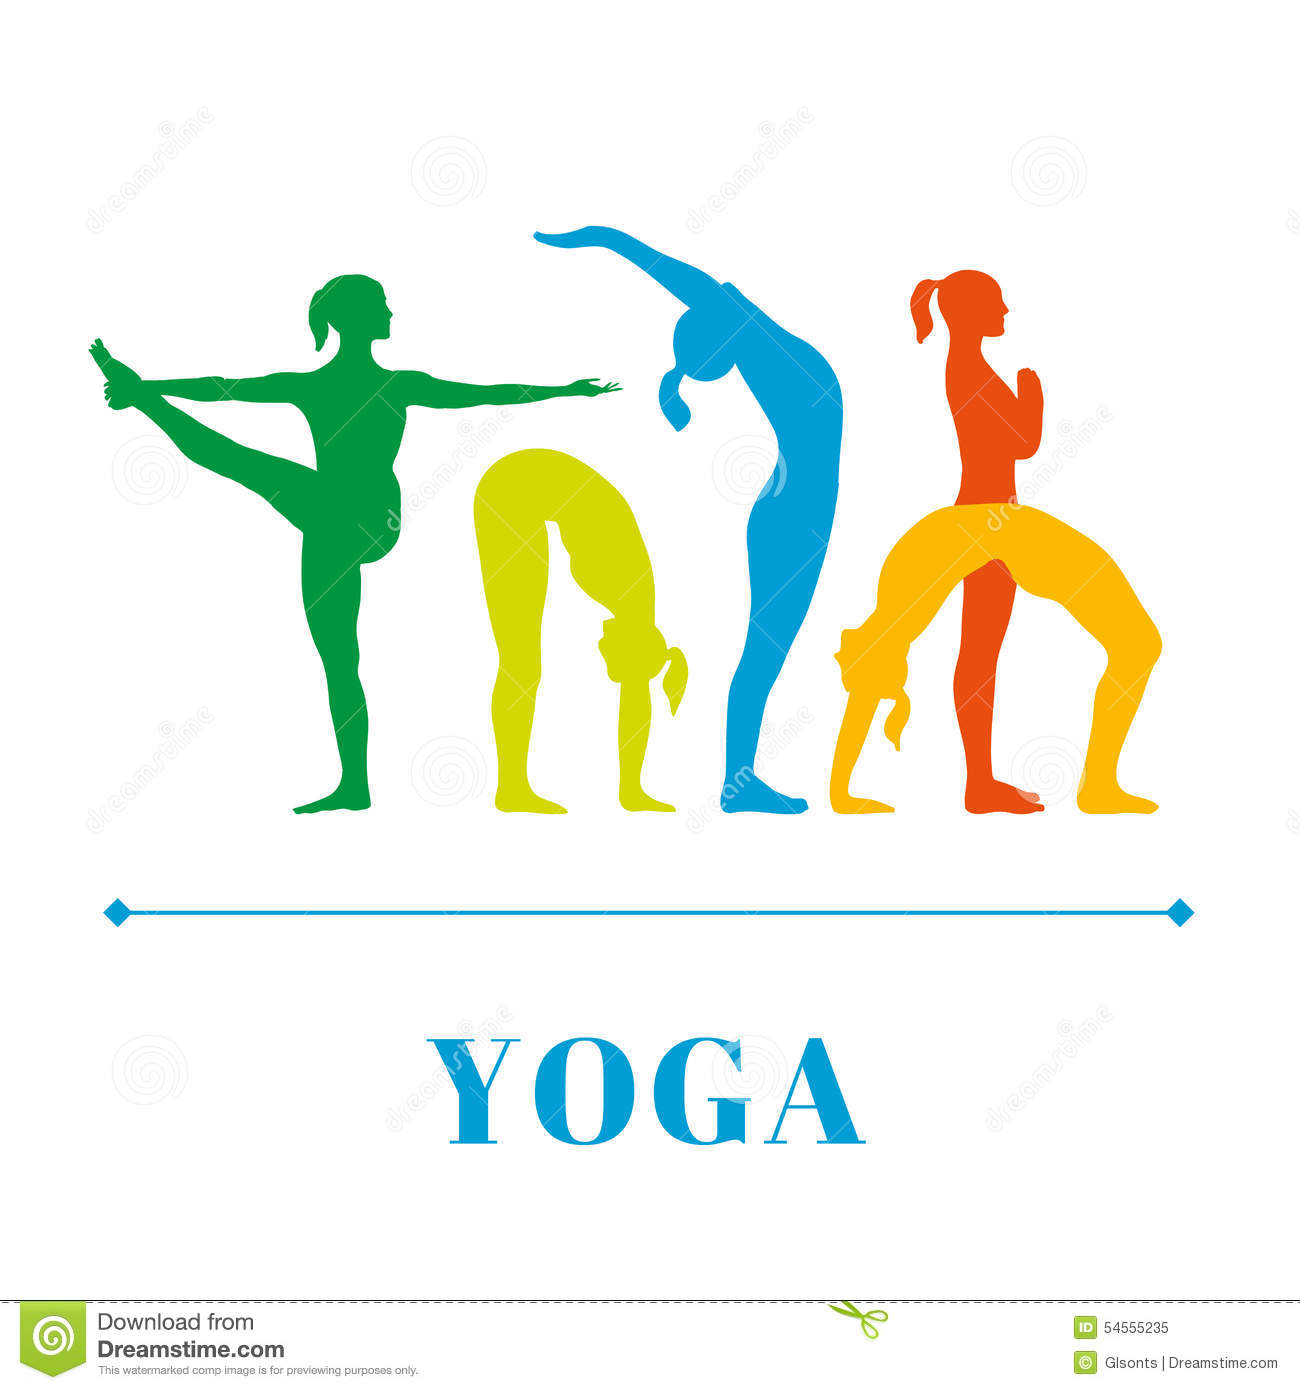 Yoga Poster With Silhouettes Of Women In The Poses On A White Background Illustration 54555235